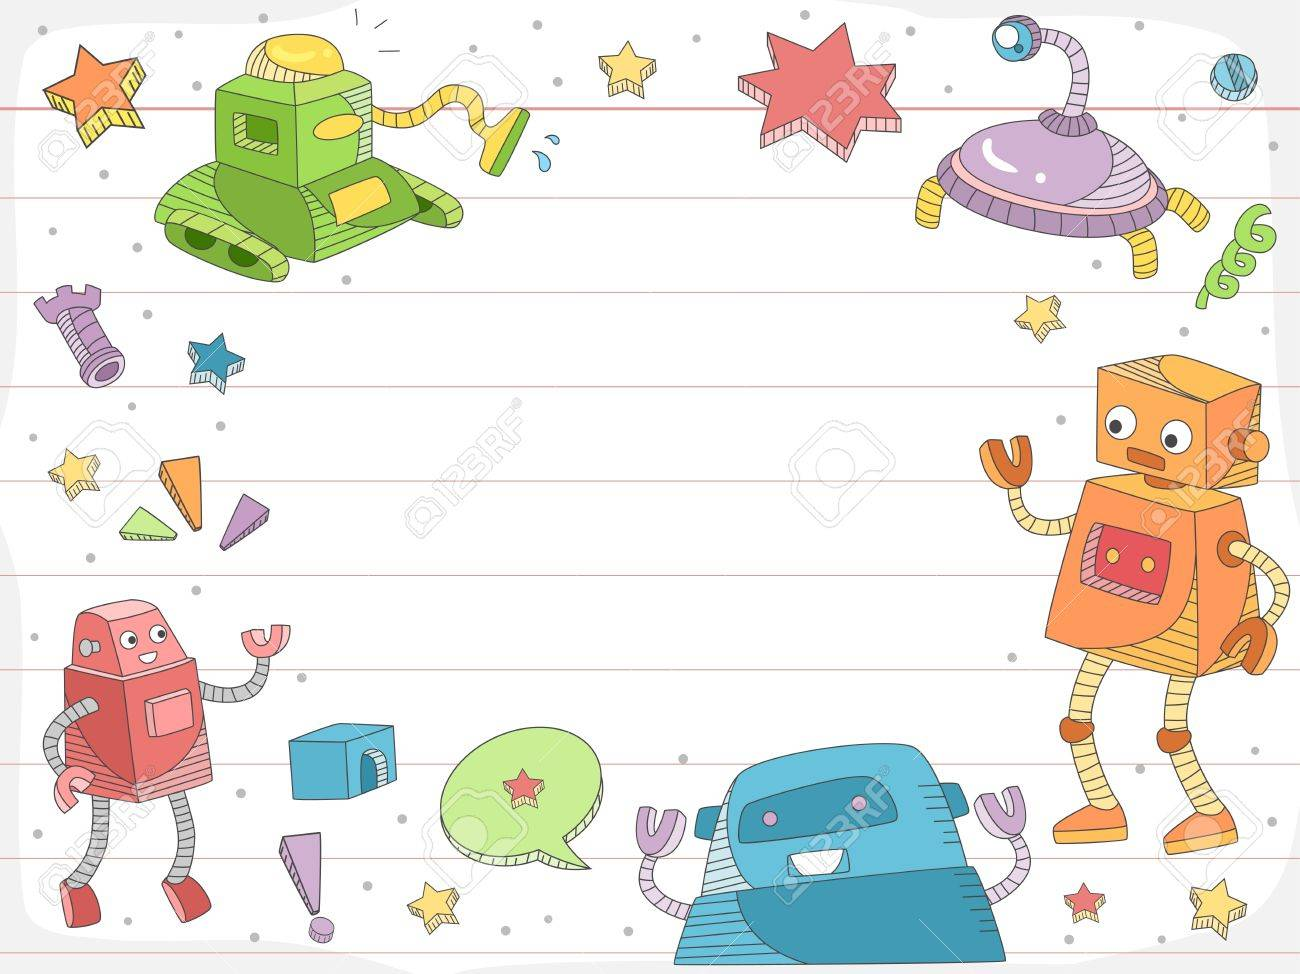 Background Illustration Of A Cartoon Doodle Design On Ruled Paper Stock Photo Picture And Royalty Free Image Image 16553030